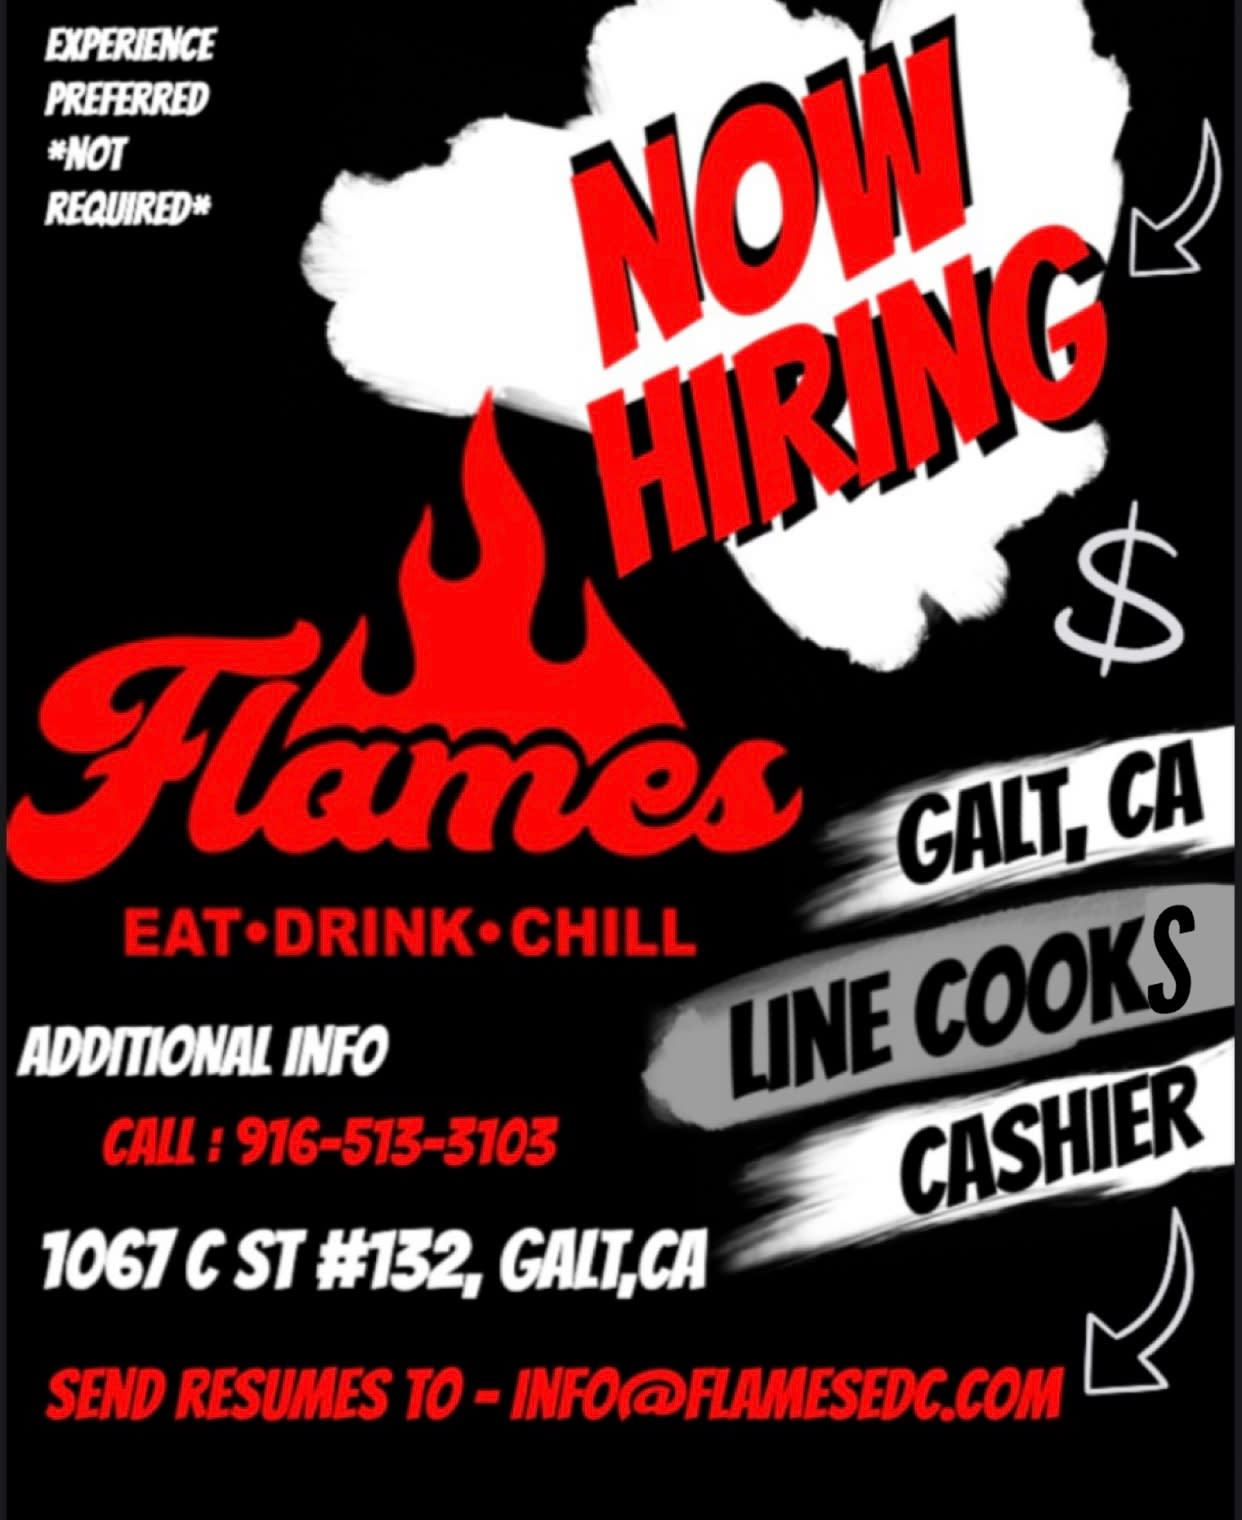 Flames Eat.Drink. Chill - Now hiring Line Cooks & Cashiers flyer